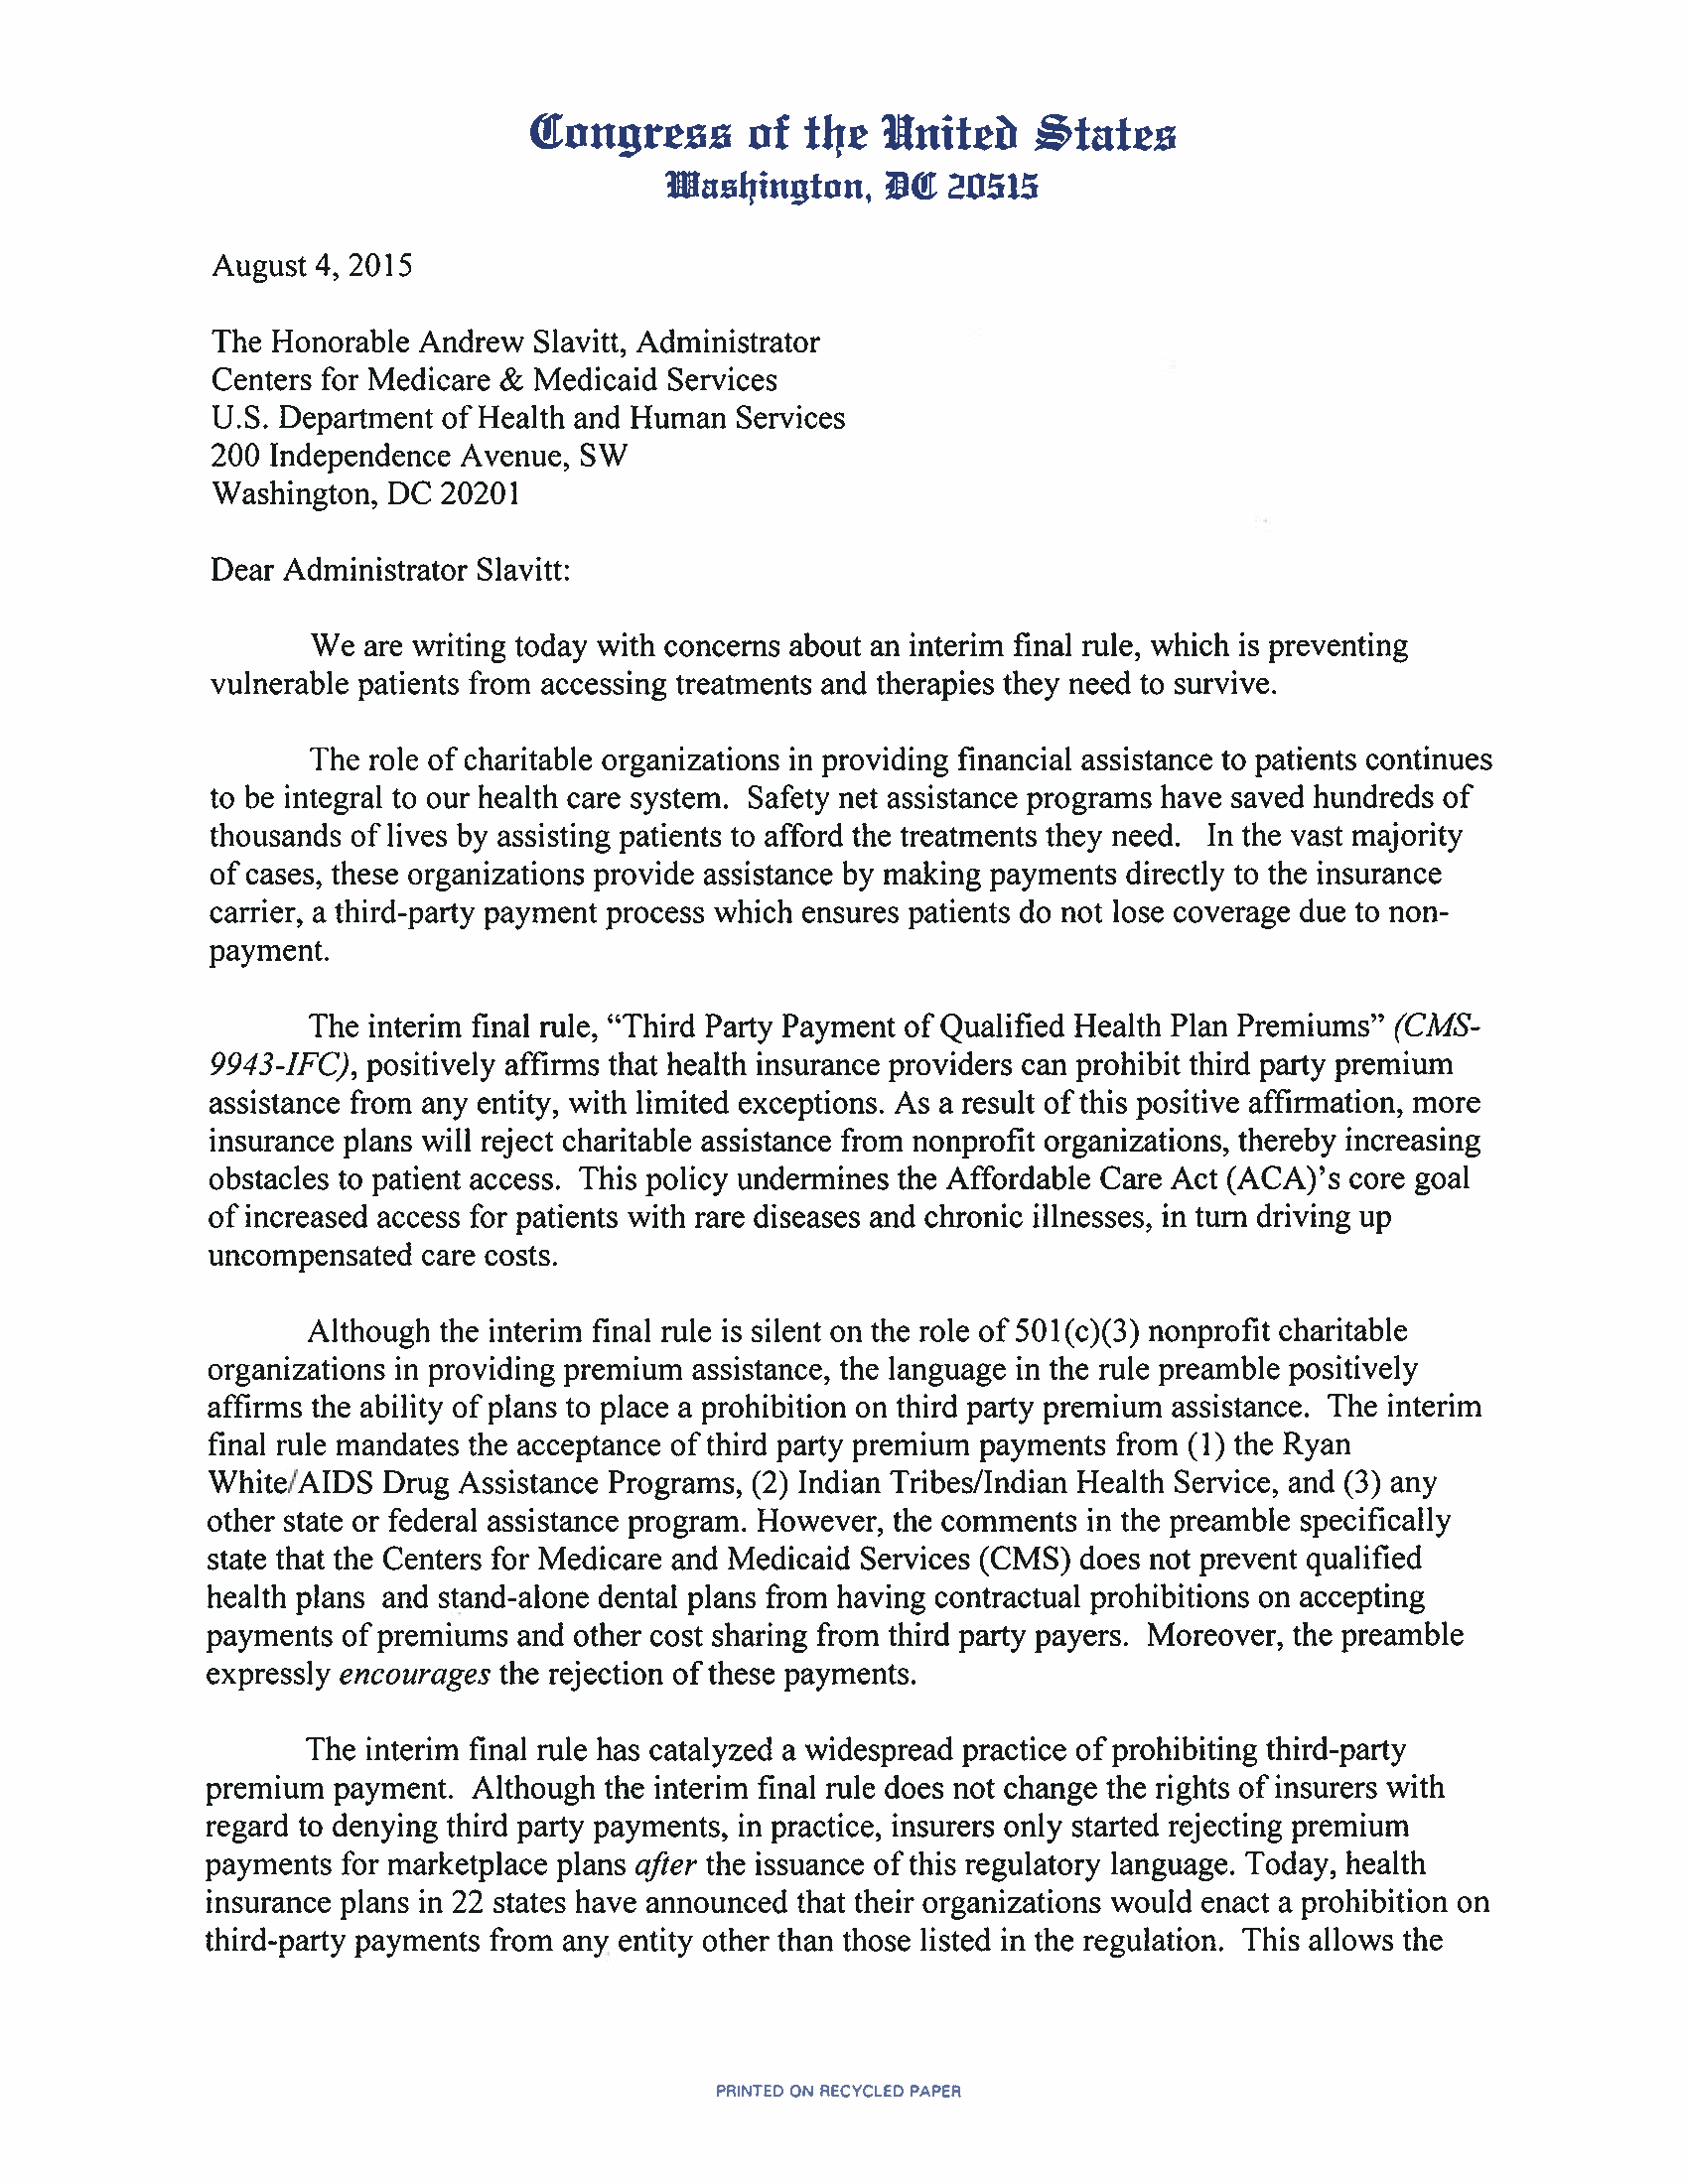 CMS Letter re Third Party Payments_Page_1.png